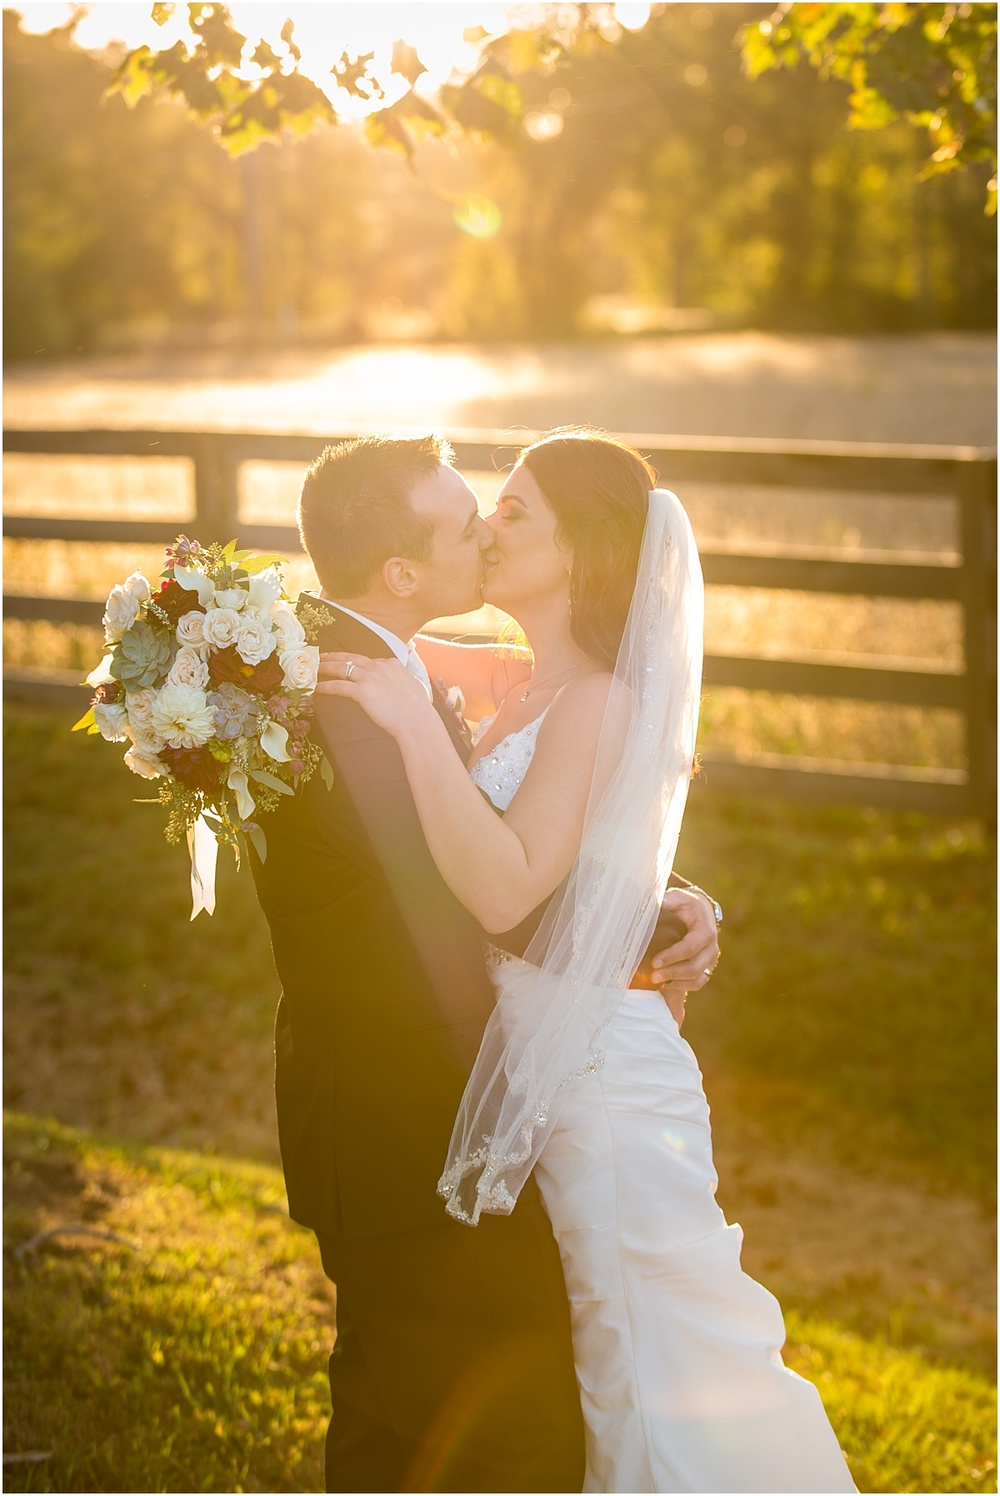 Greg Smit Photography Nashville wedding photographer Mint Springs Farm_0172